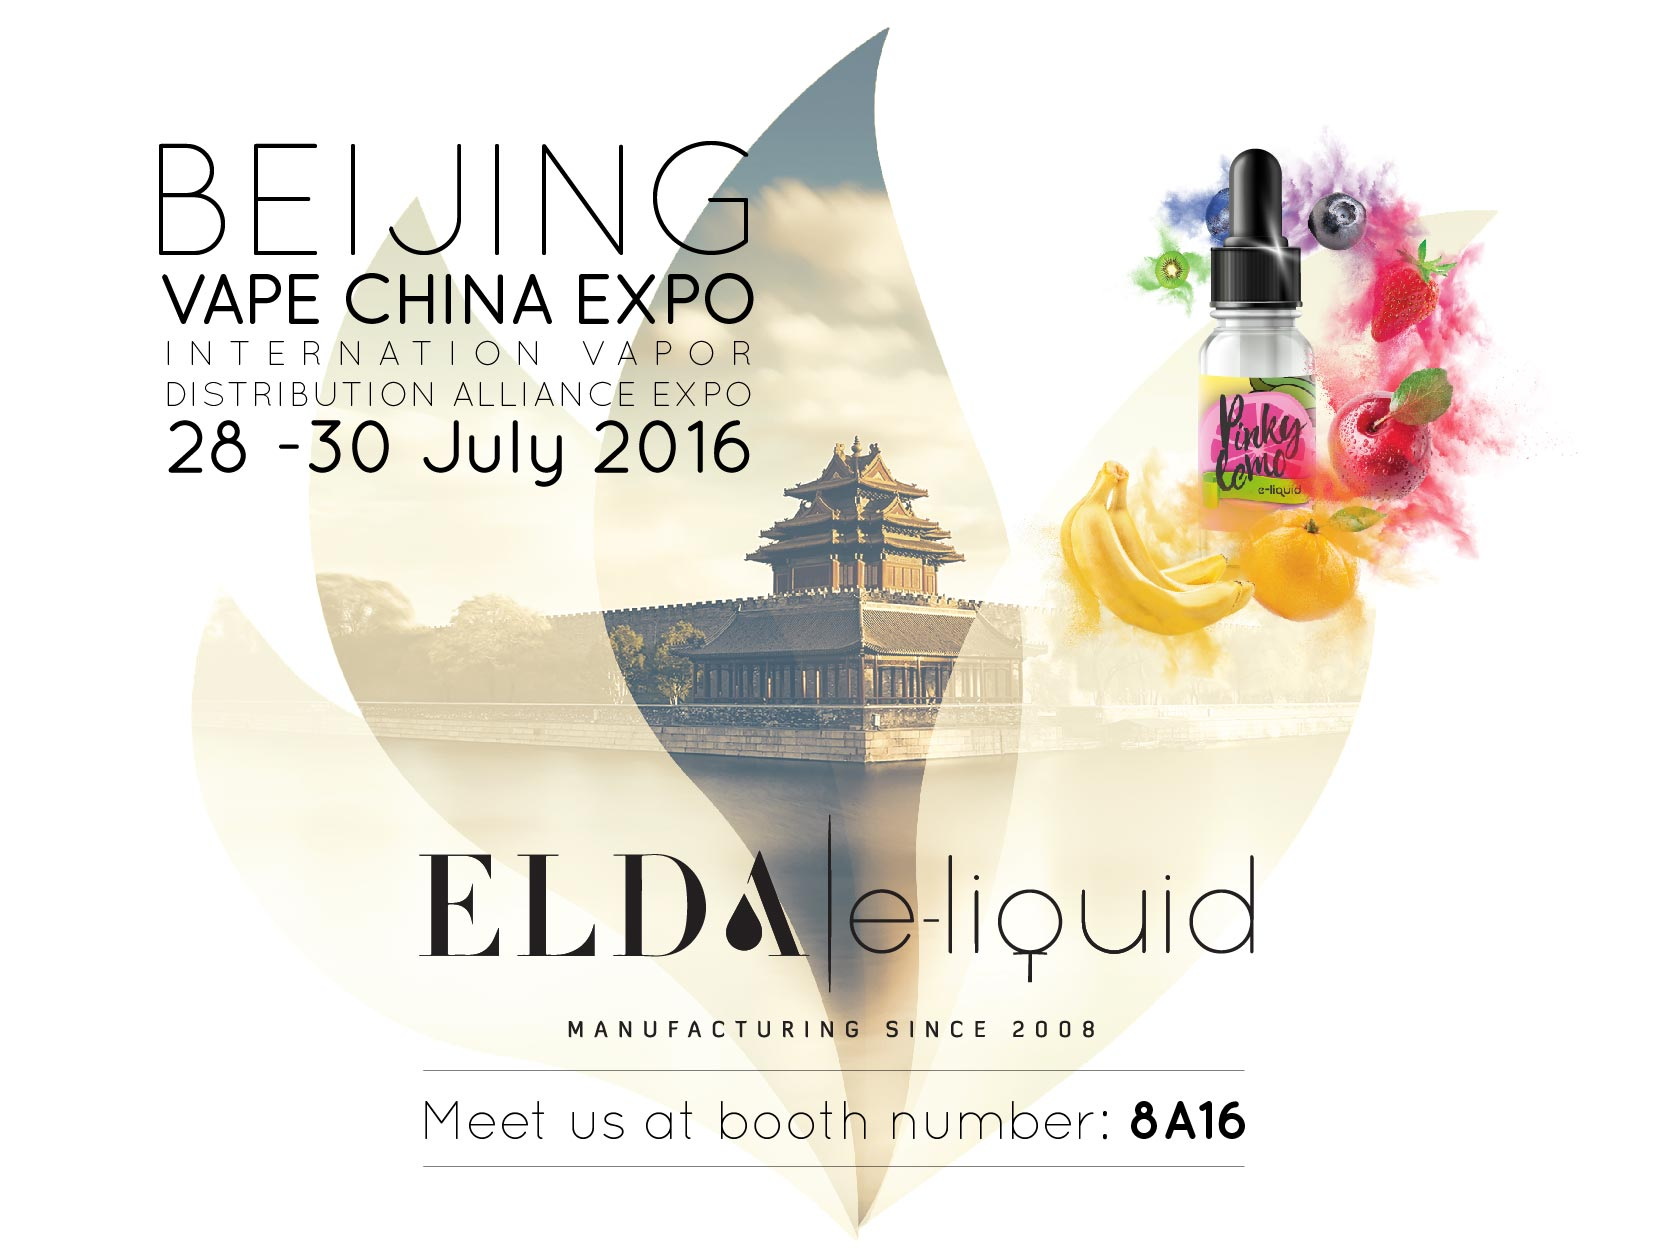 Meet ELDA at Beijing VAPE CHINA EXPO, 28-30 July 2016